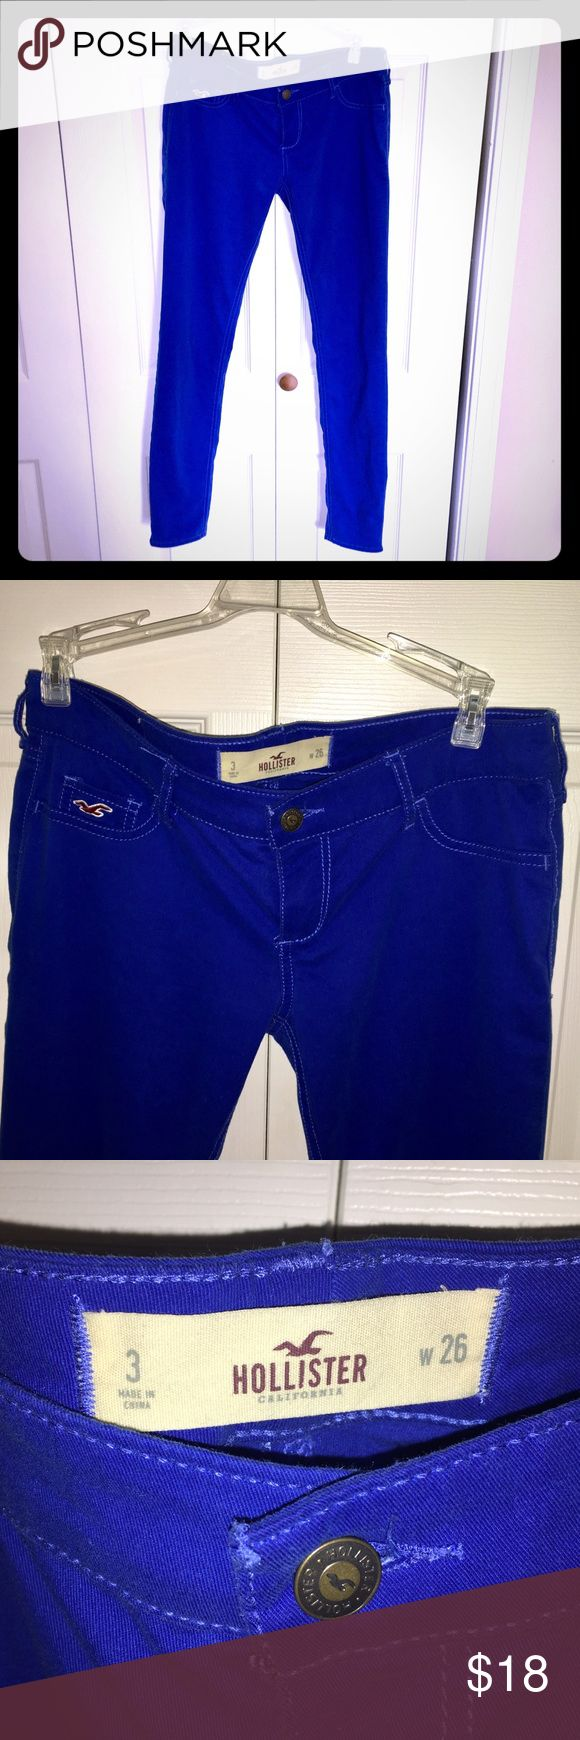 Royal Blue Hollister Jeans Skinny Cute soft stretchy jeans in a fun royal blue color. Skinny leg. Excellent condition! Size 3 Juniors Hollister Jeans Skinny